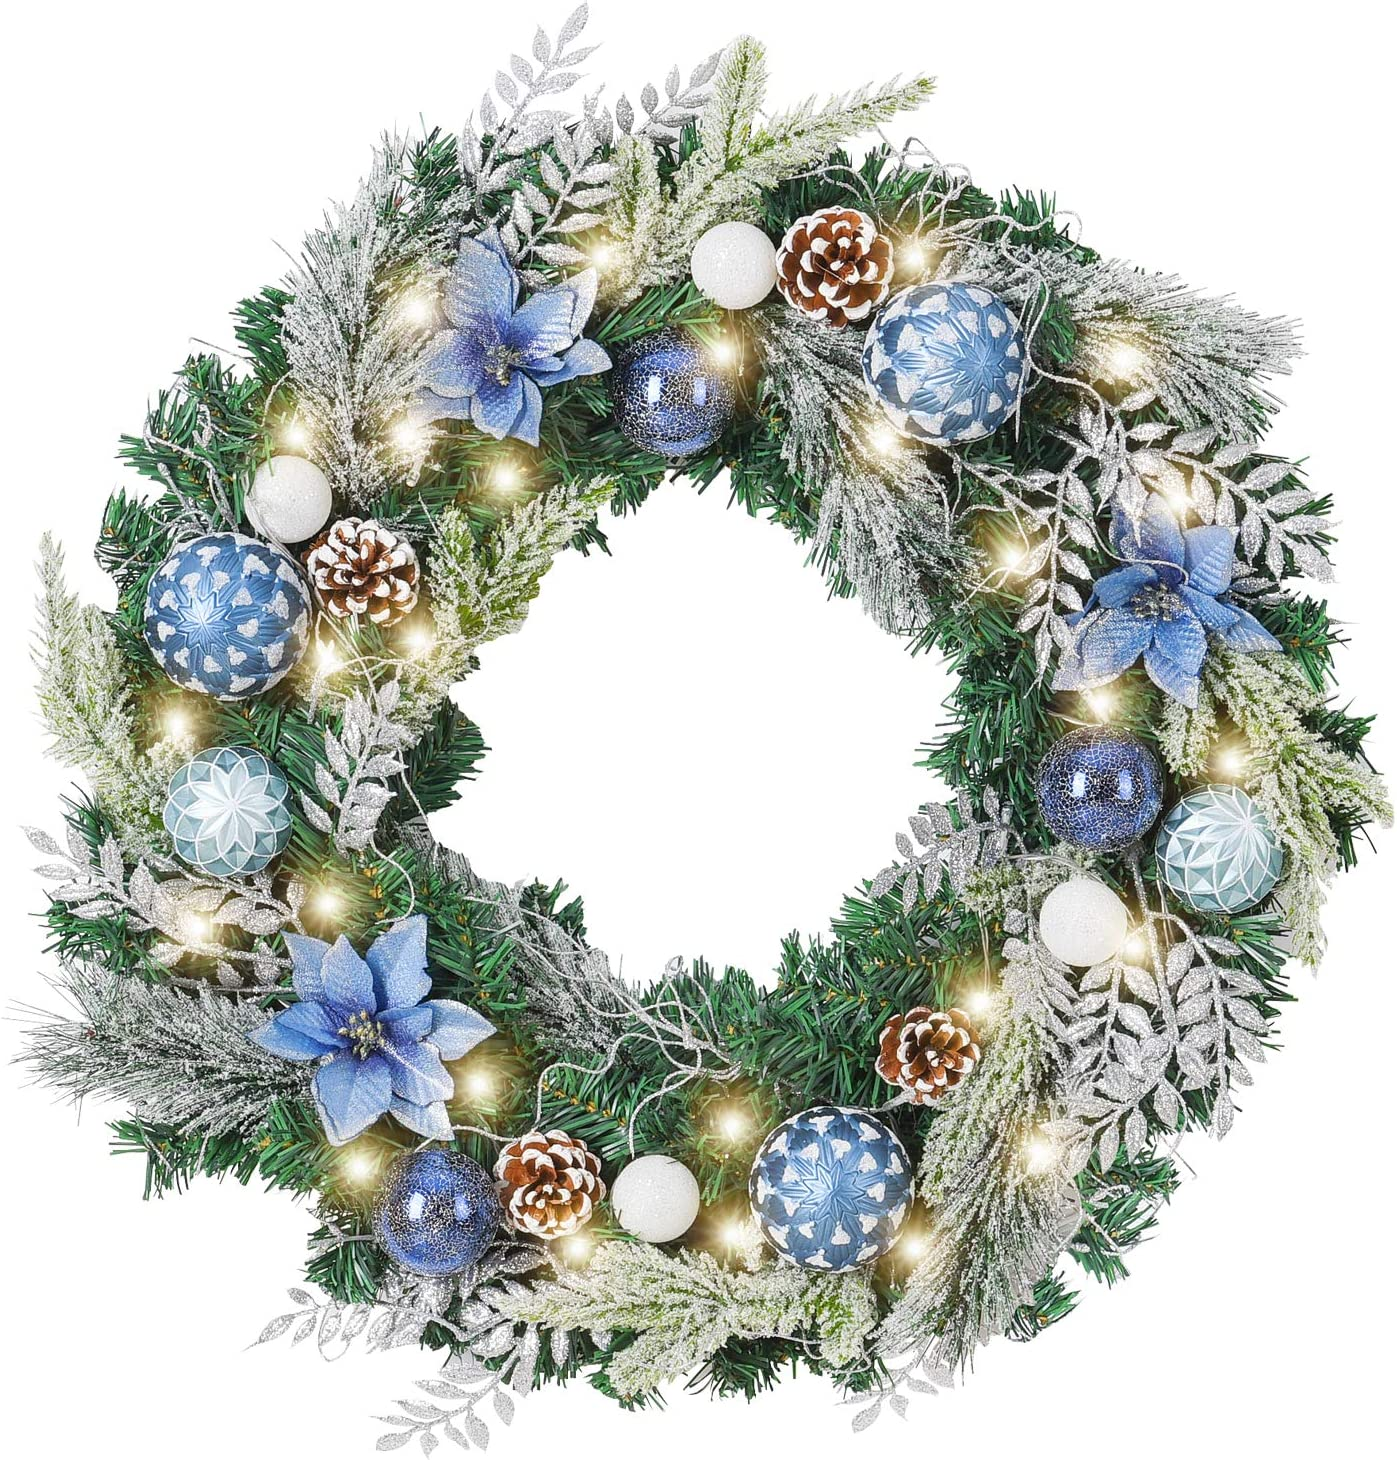 Wanna Cul Pre Lit 24 Inch Christmas Wreath For Front Door Silver Blue Christmas Door Wreath Decoration With Ball Ornaments Poinsettia Flowers Pine Cones Battery Operated 30 Led Lights Kitchen Dining